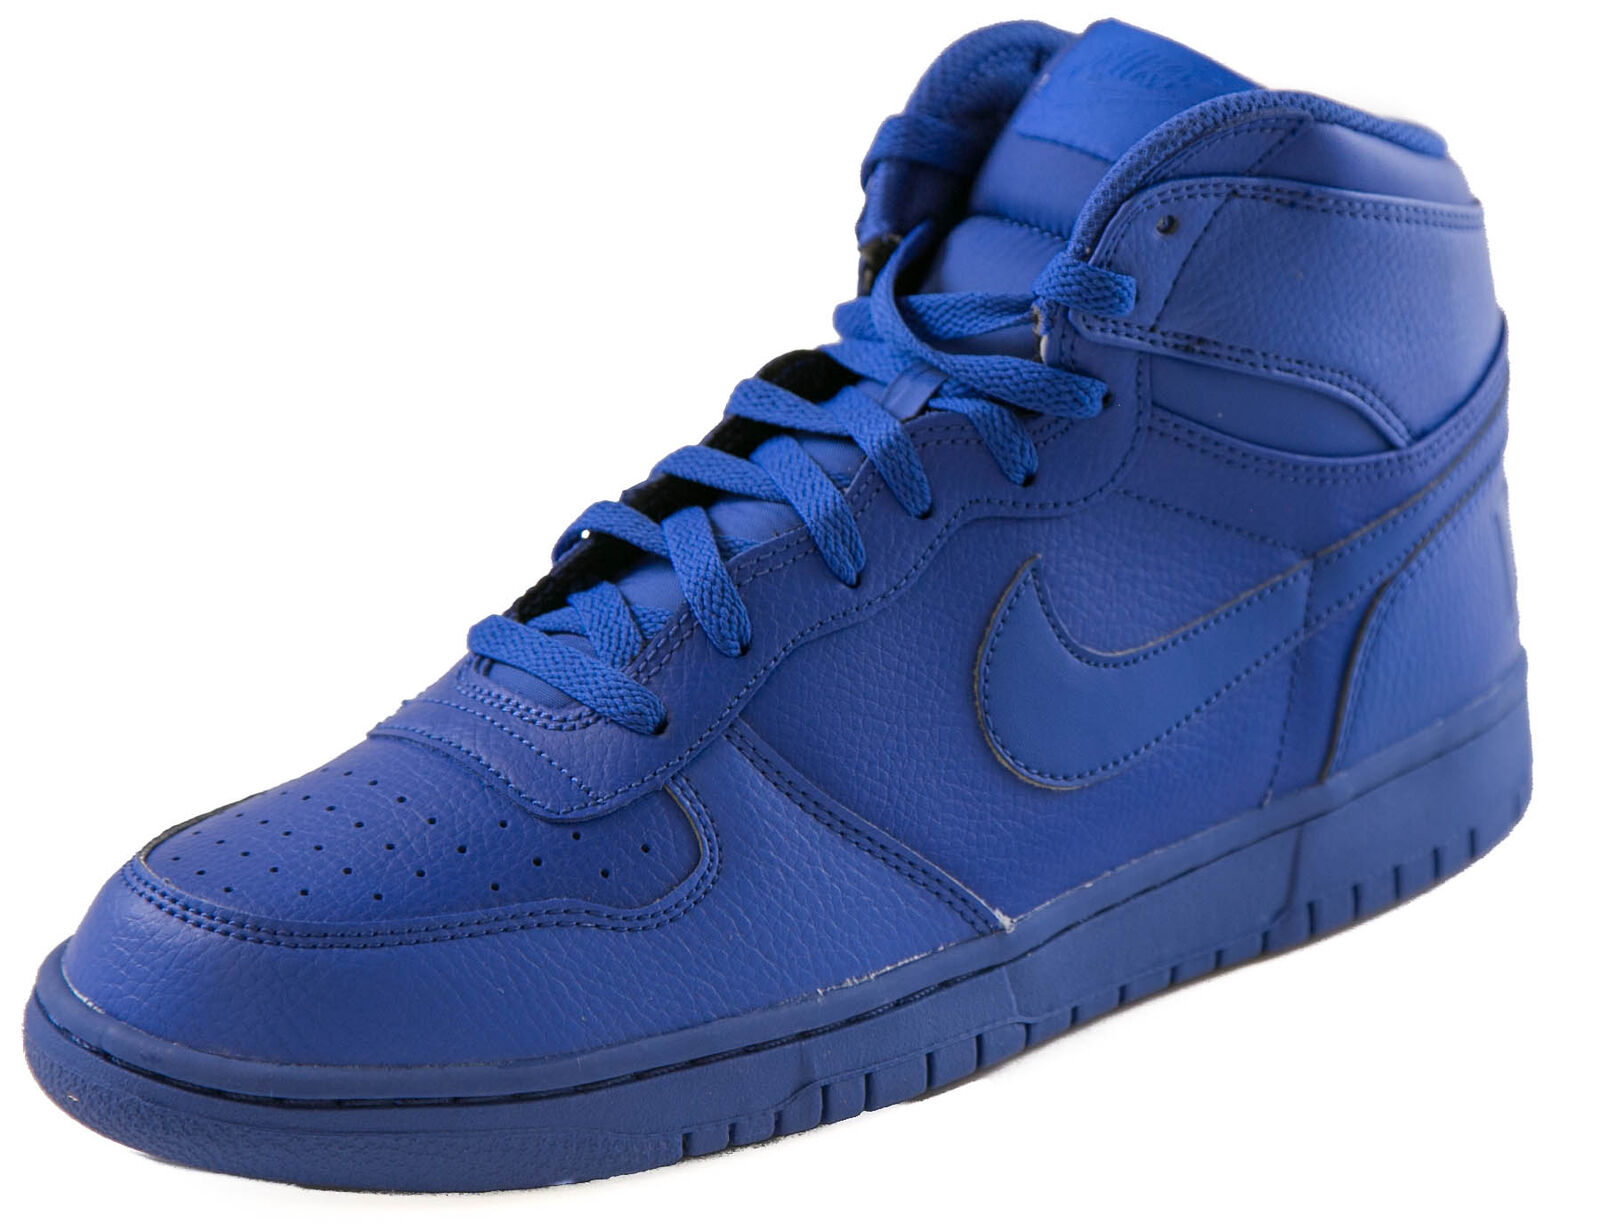 The latest discount shoes for men and women Men's Big Nike High Basketball Shoes University Blue